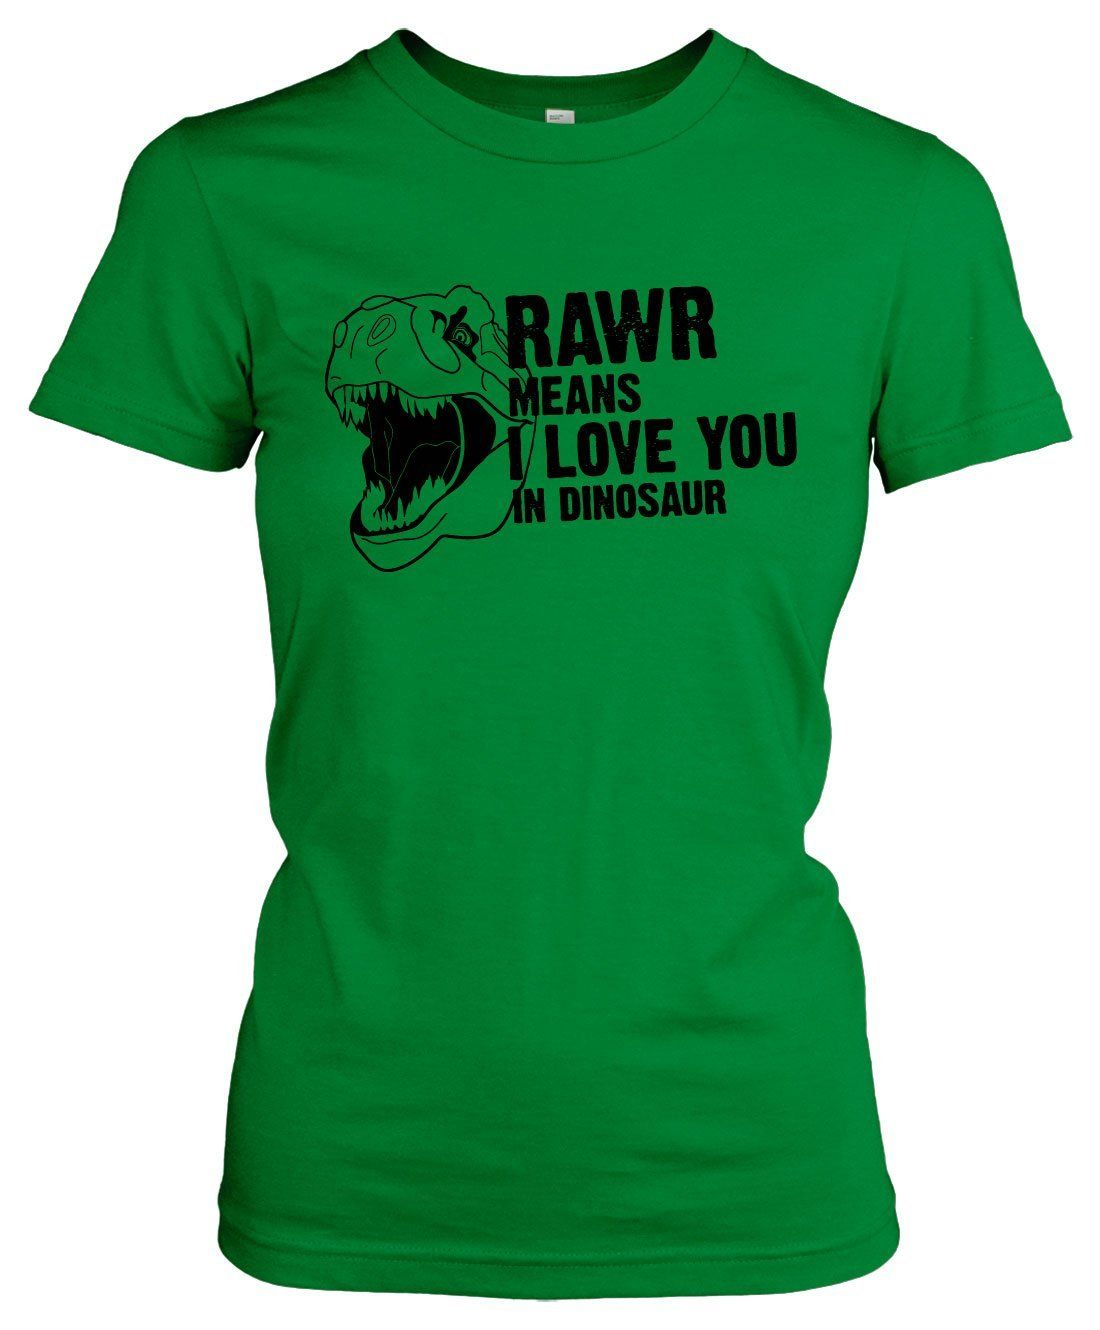 0a2782b5cc Women's Rawr Means I Love You in Dinosaur T Shirt - Funny Tee for Dino  Fans. Find this Pin and more on MEME by Ronnie Diebold. Tags. St Patrick's  Day Outfit